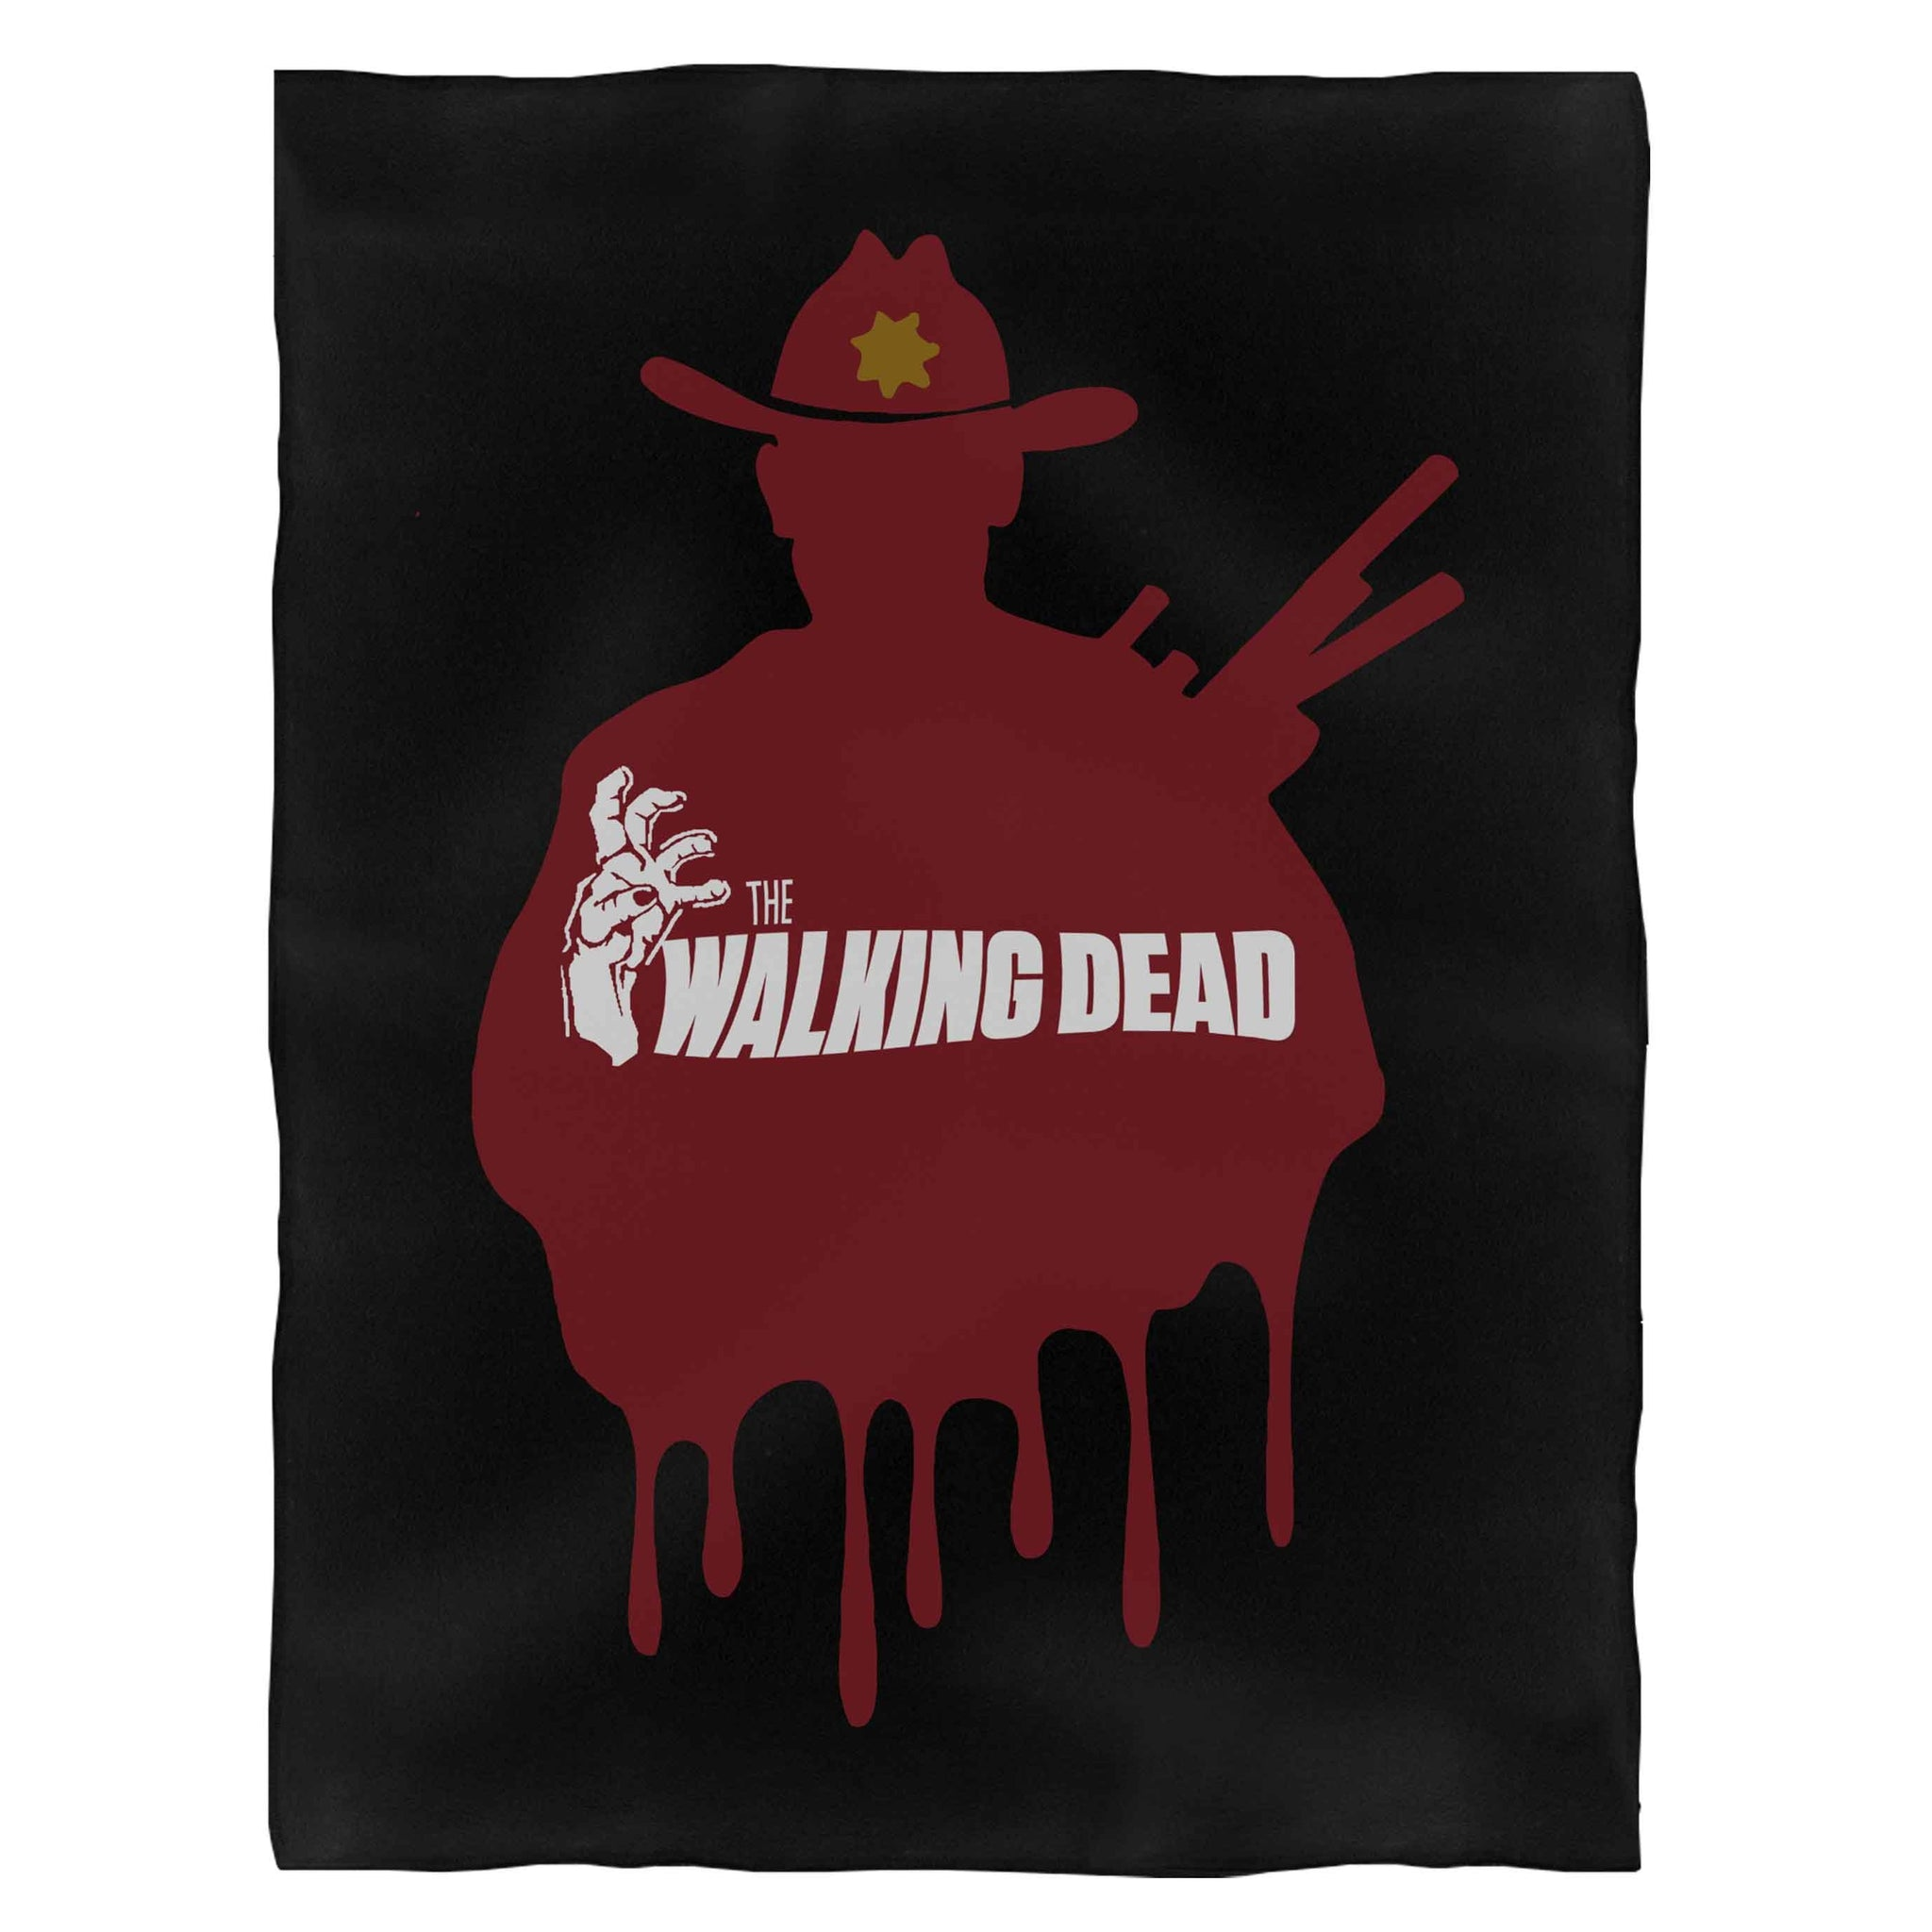 The Walking Dead Art Fleece Blanket